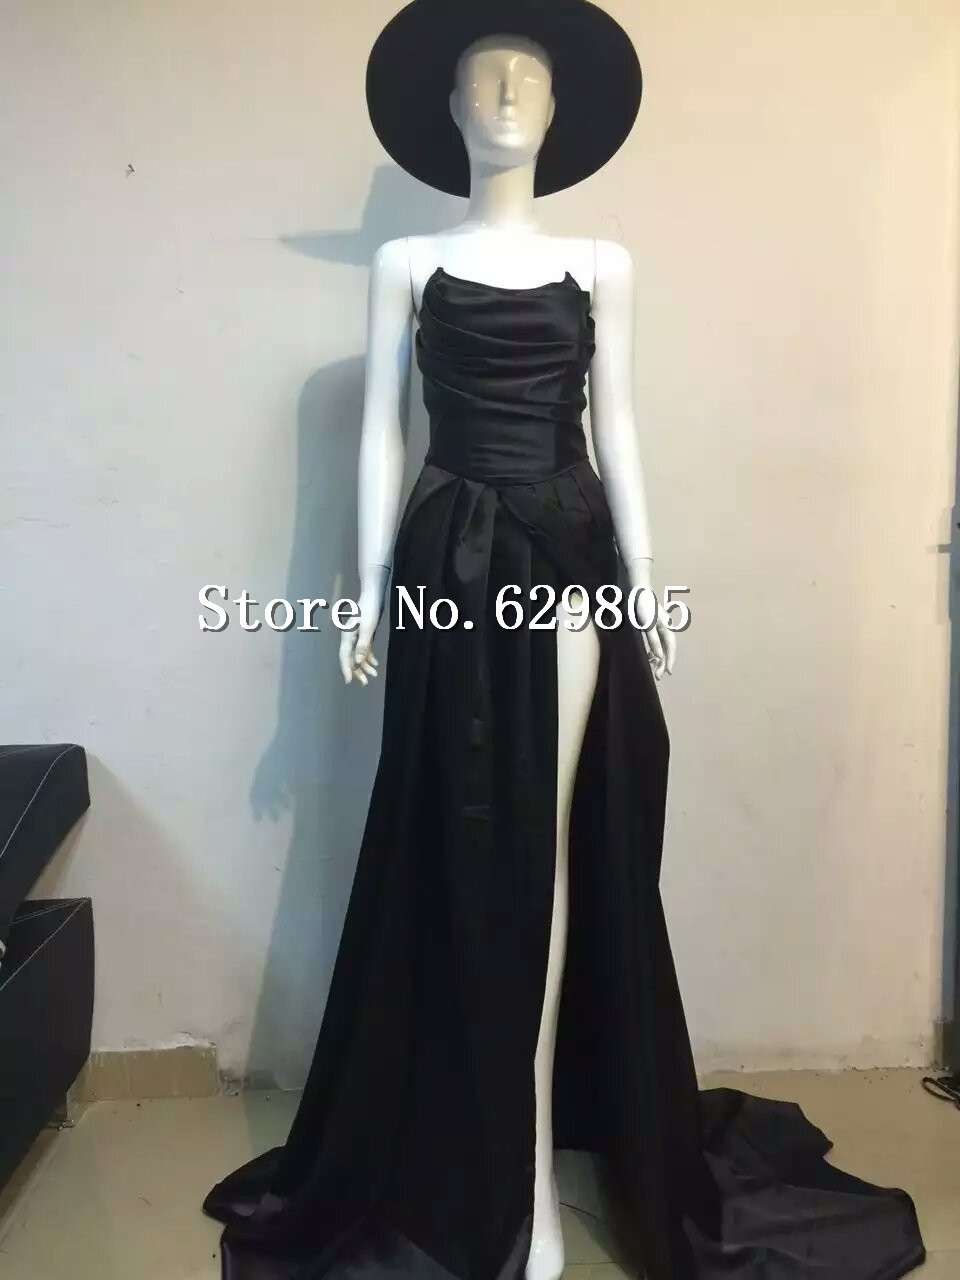 Black Long Skirt Girly Dj Ds Female Singer Costumes Big Full Dress Formal Dress Clothing Set Performance Nightclub Dance Wear